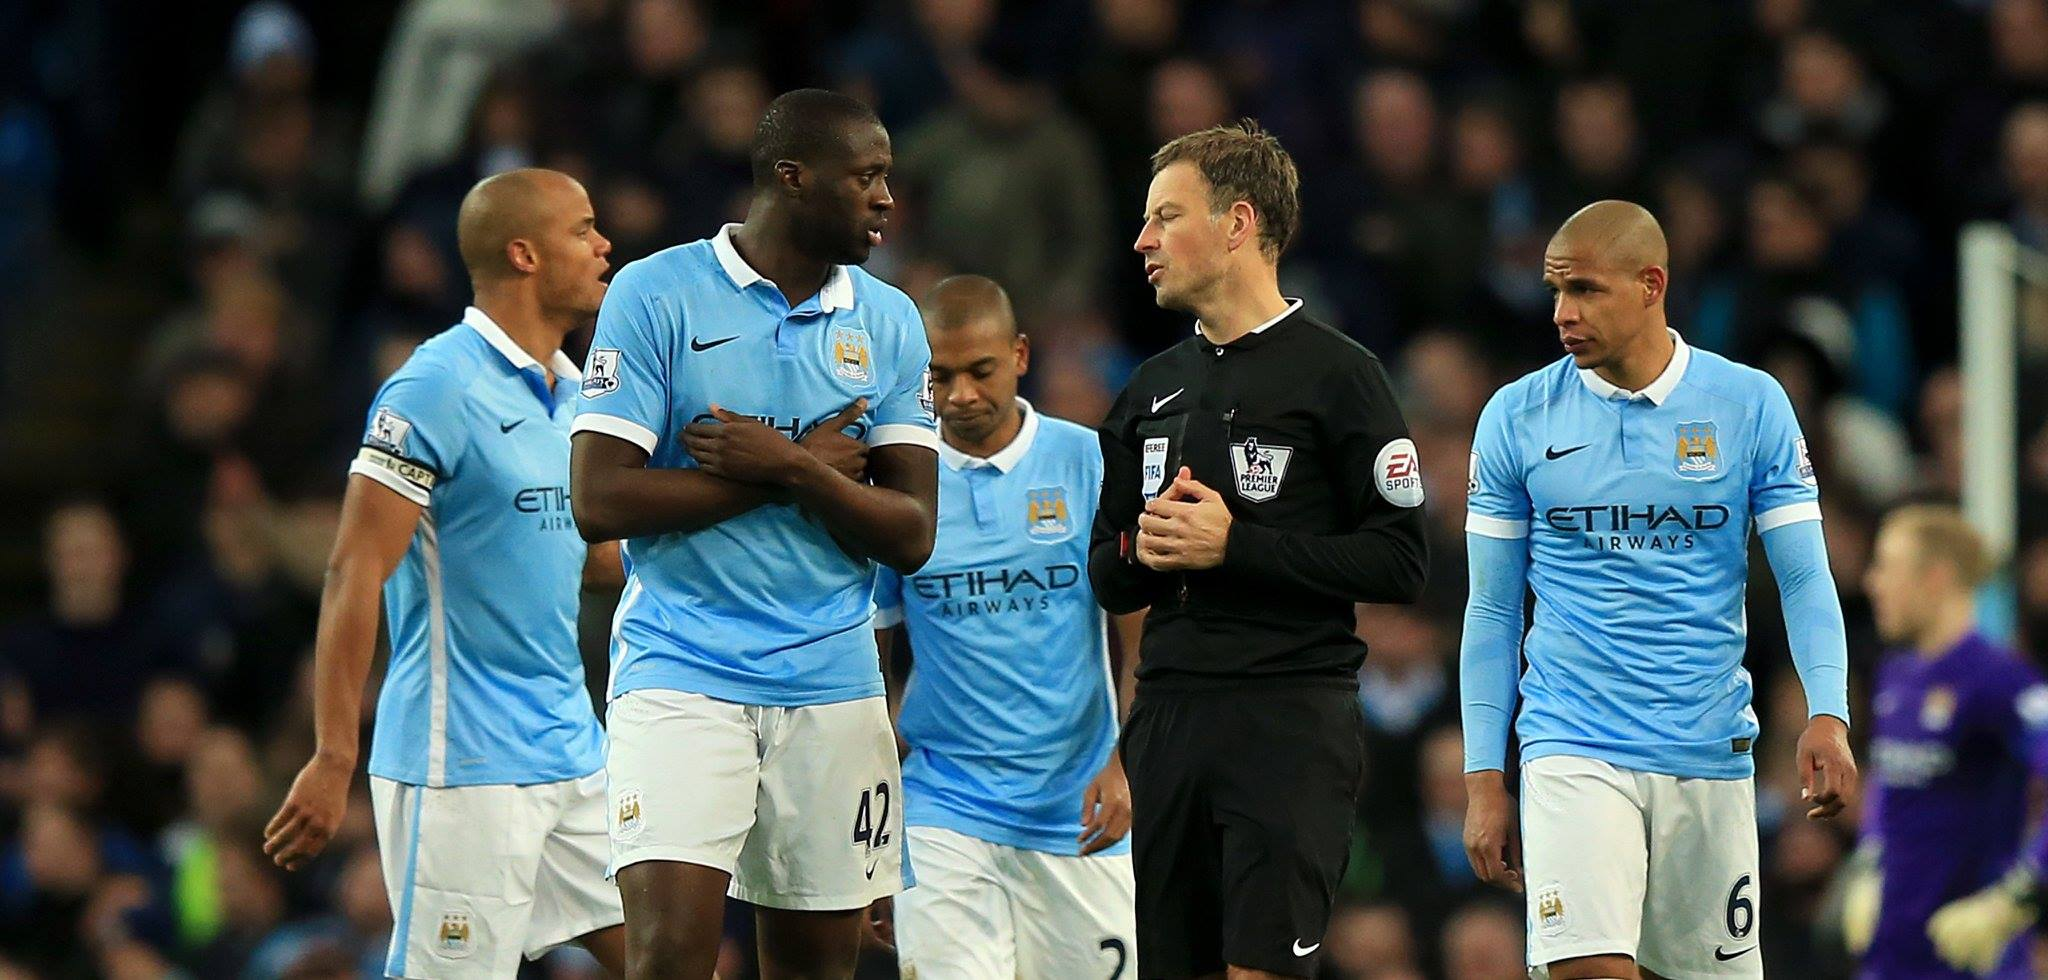 Gobsmacked - City's players cannot believe Clattenburg's penalty decision.